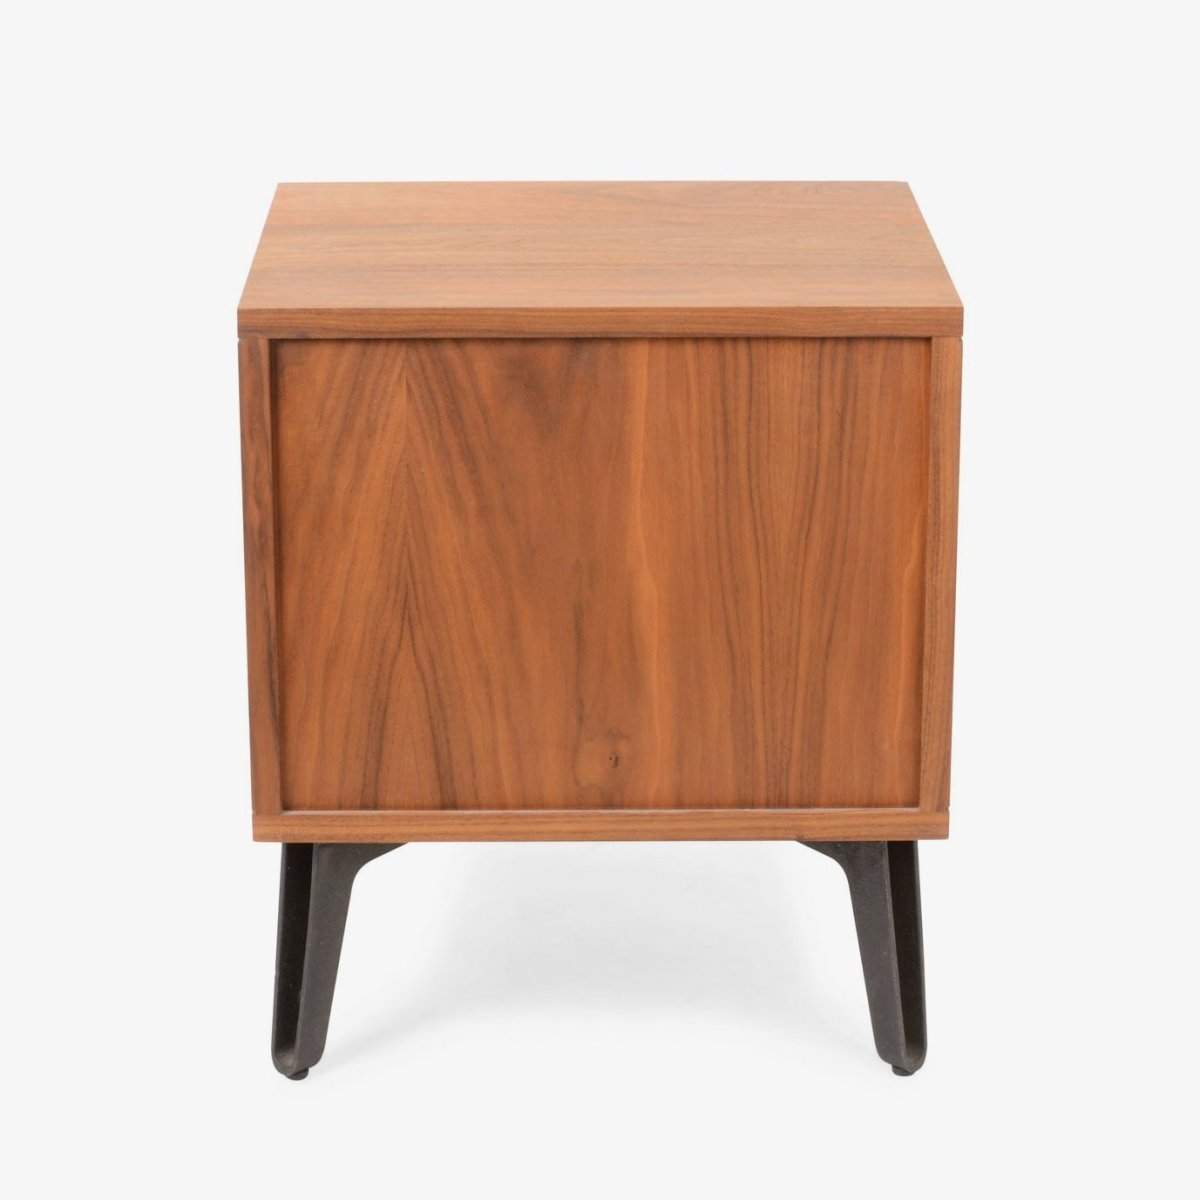 379 Mcqueen Bedside Chest, walnut, back view.